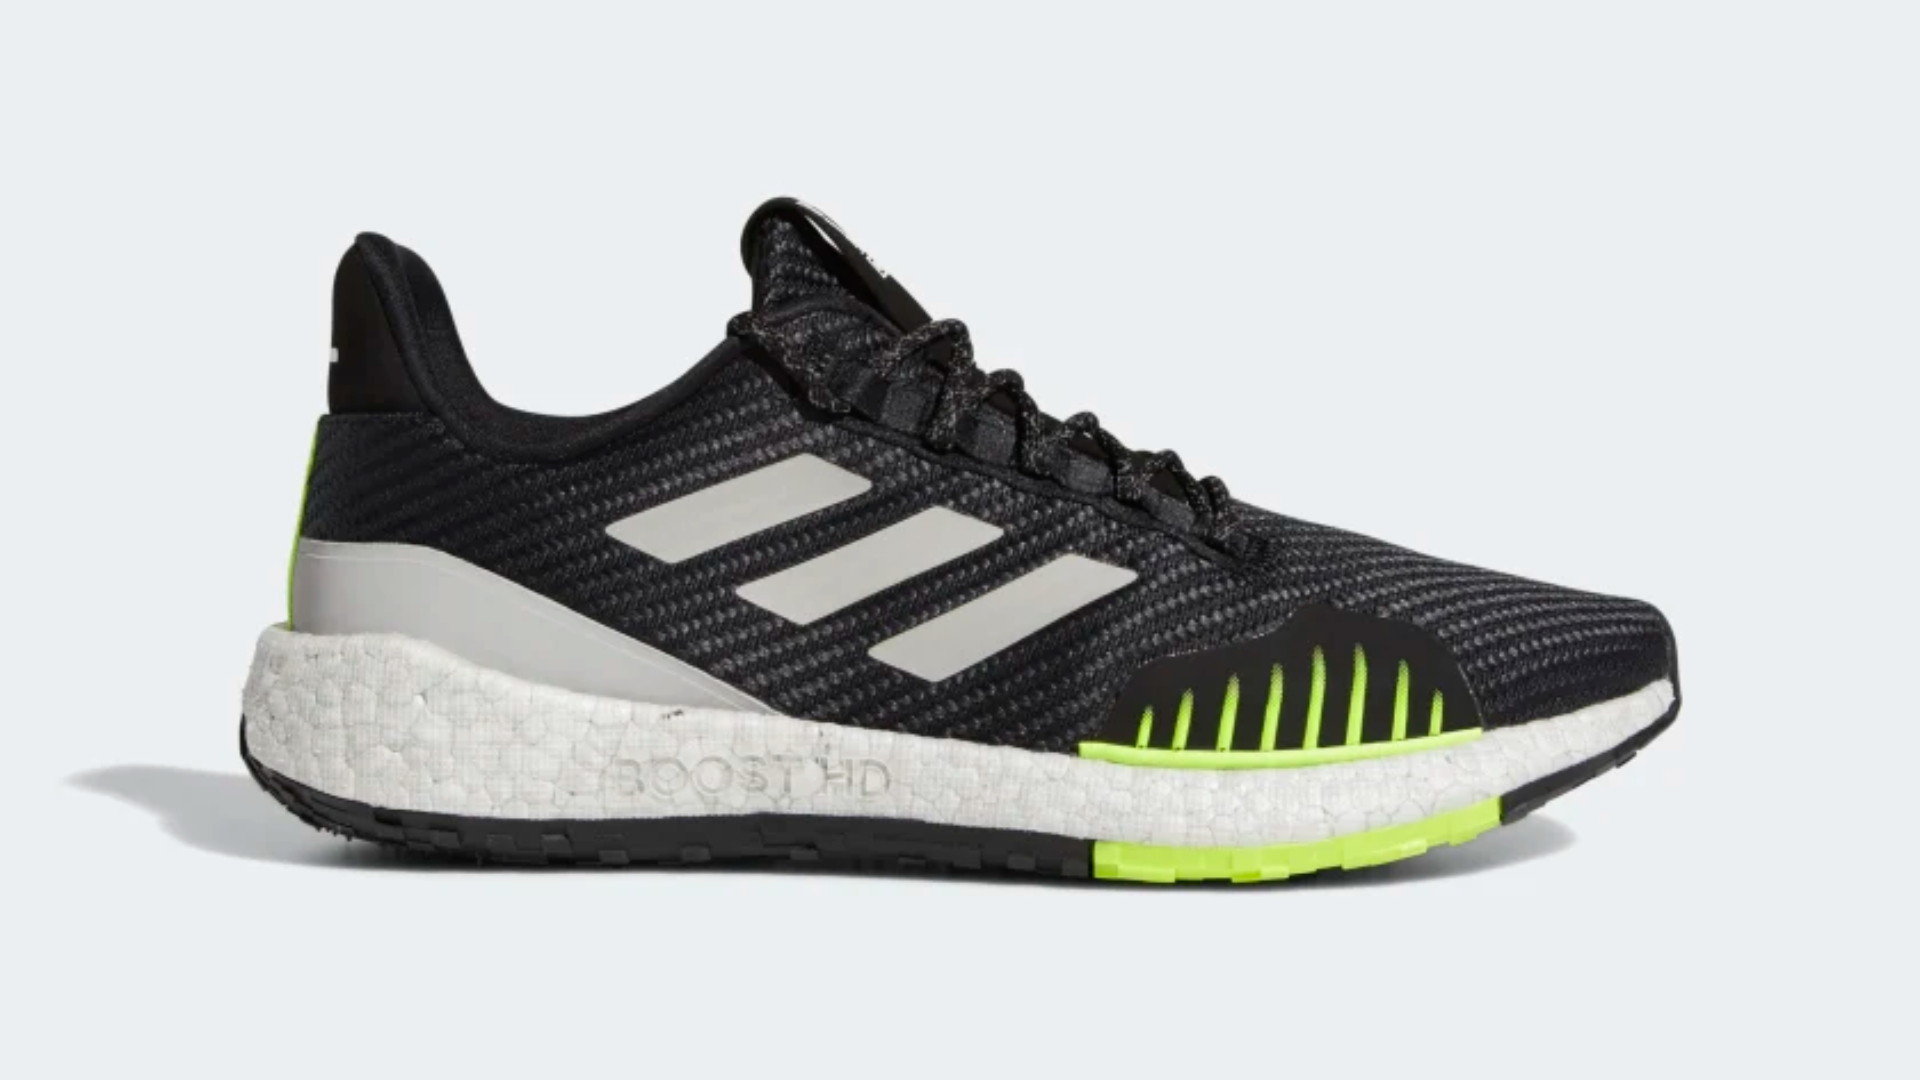 best looking adidas shoes